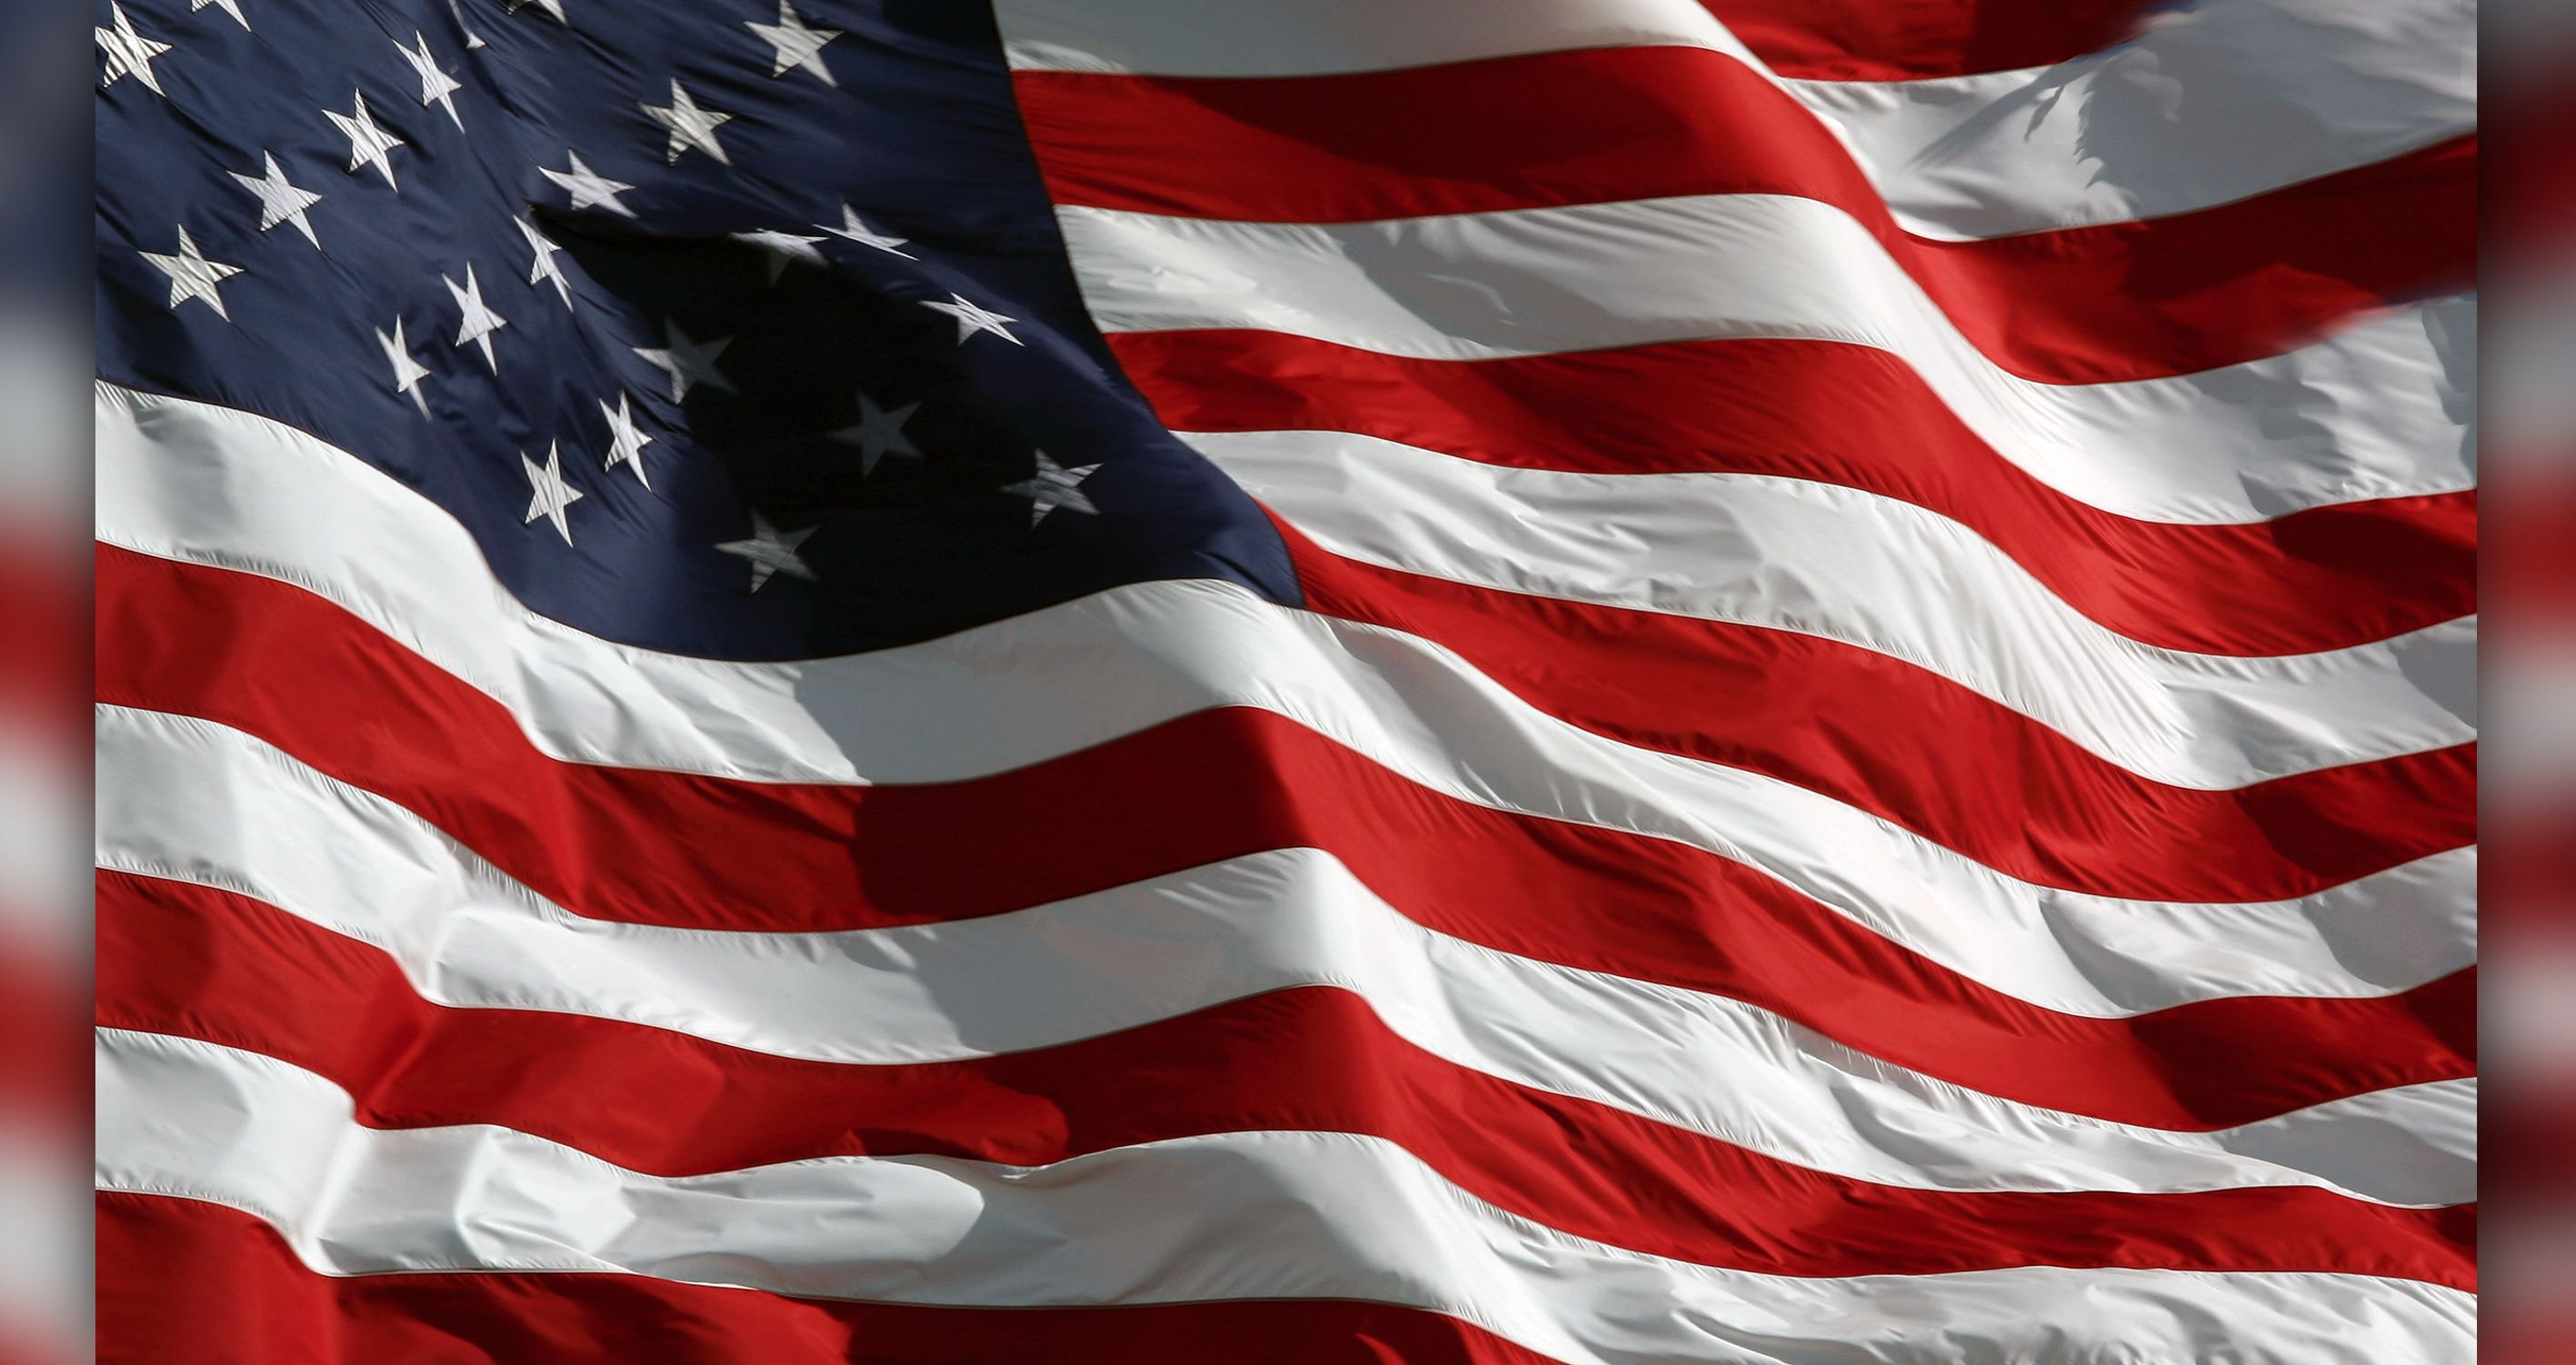 the flag - E Pluribus Unum: Out of Many, One – A Love Letter to This Nation and to Old Glory